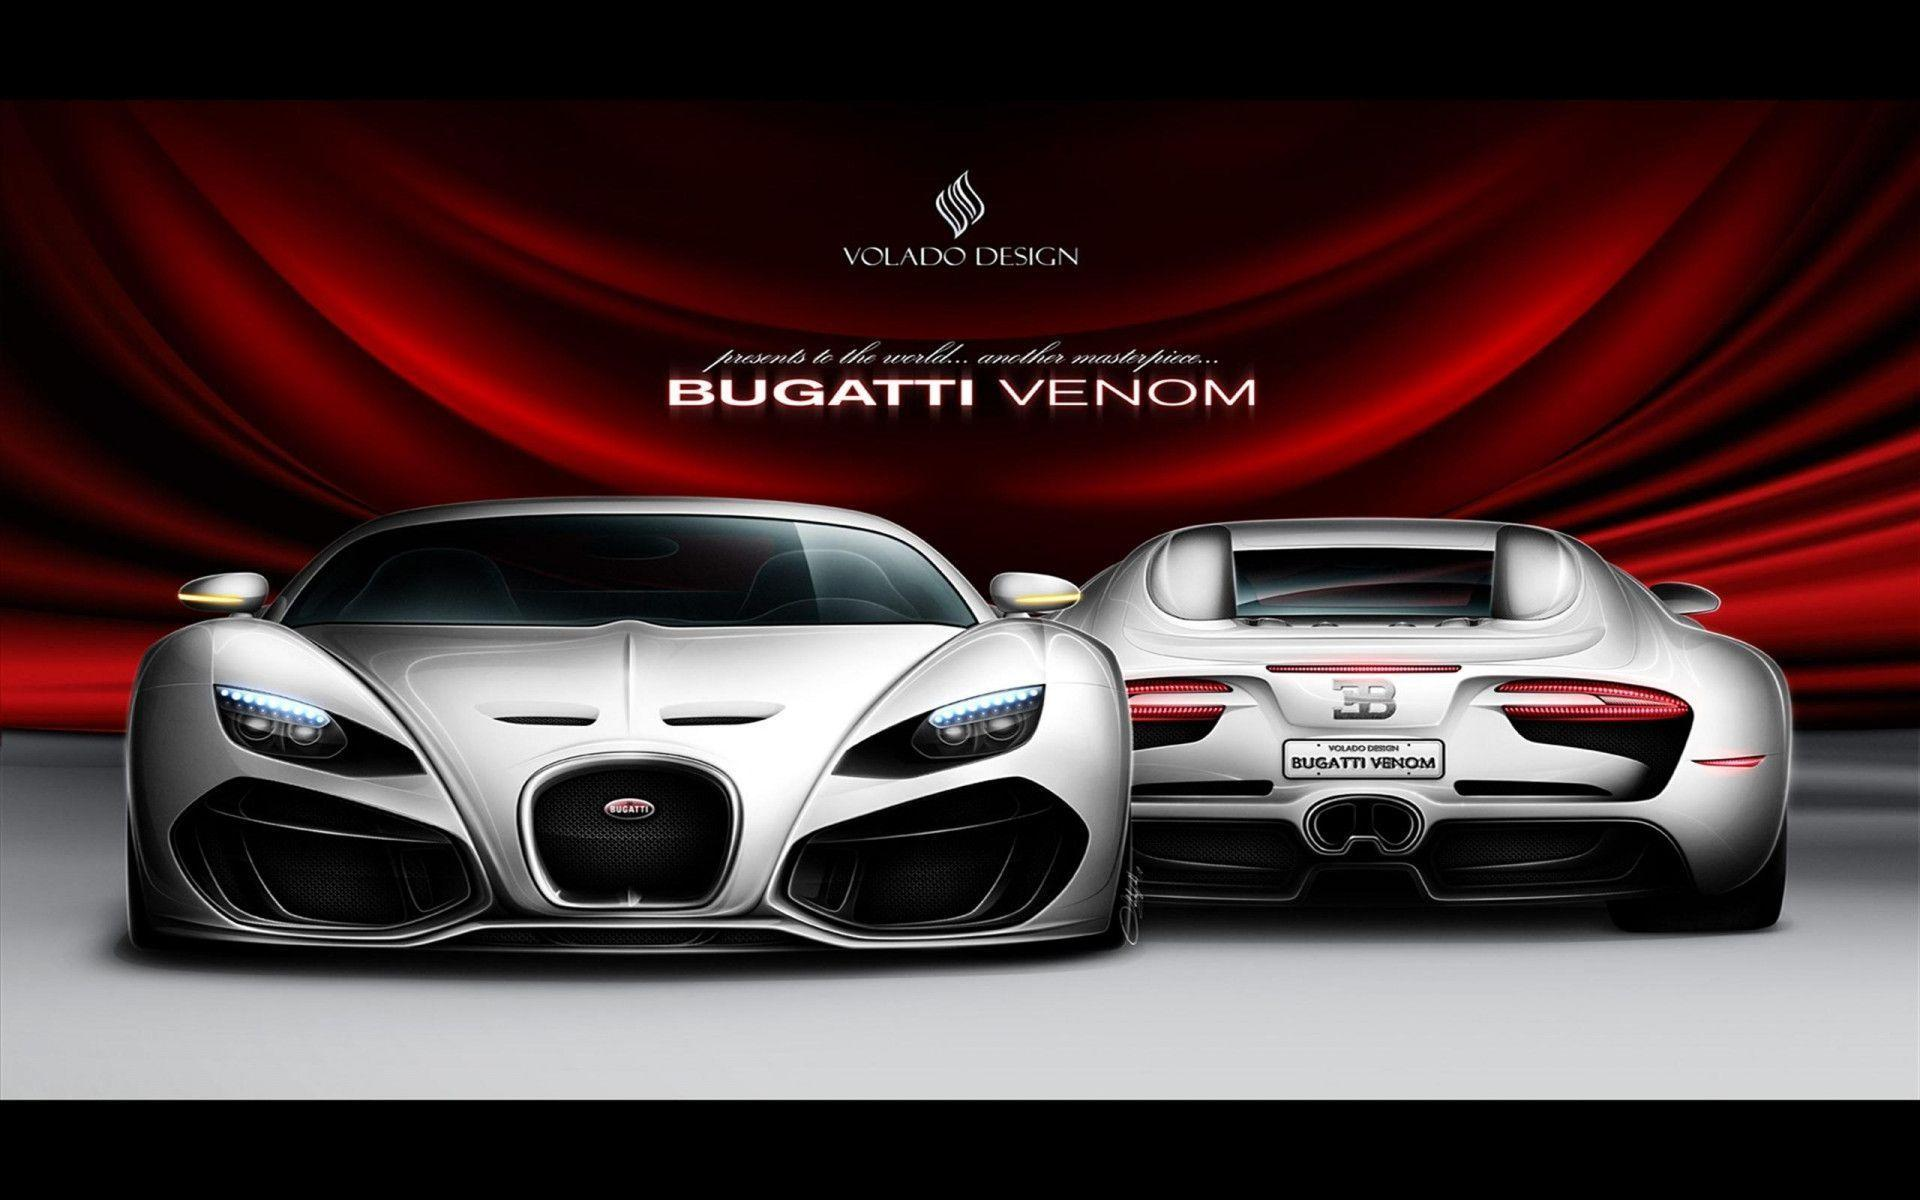 Bugatti Car Wallpaper Background HD 19 | Car Wallpaper Background ...